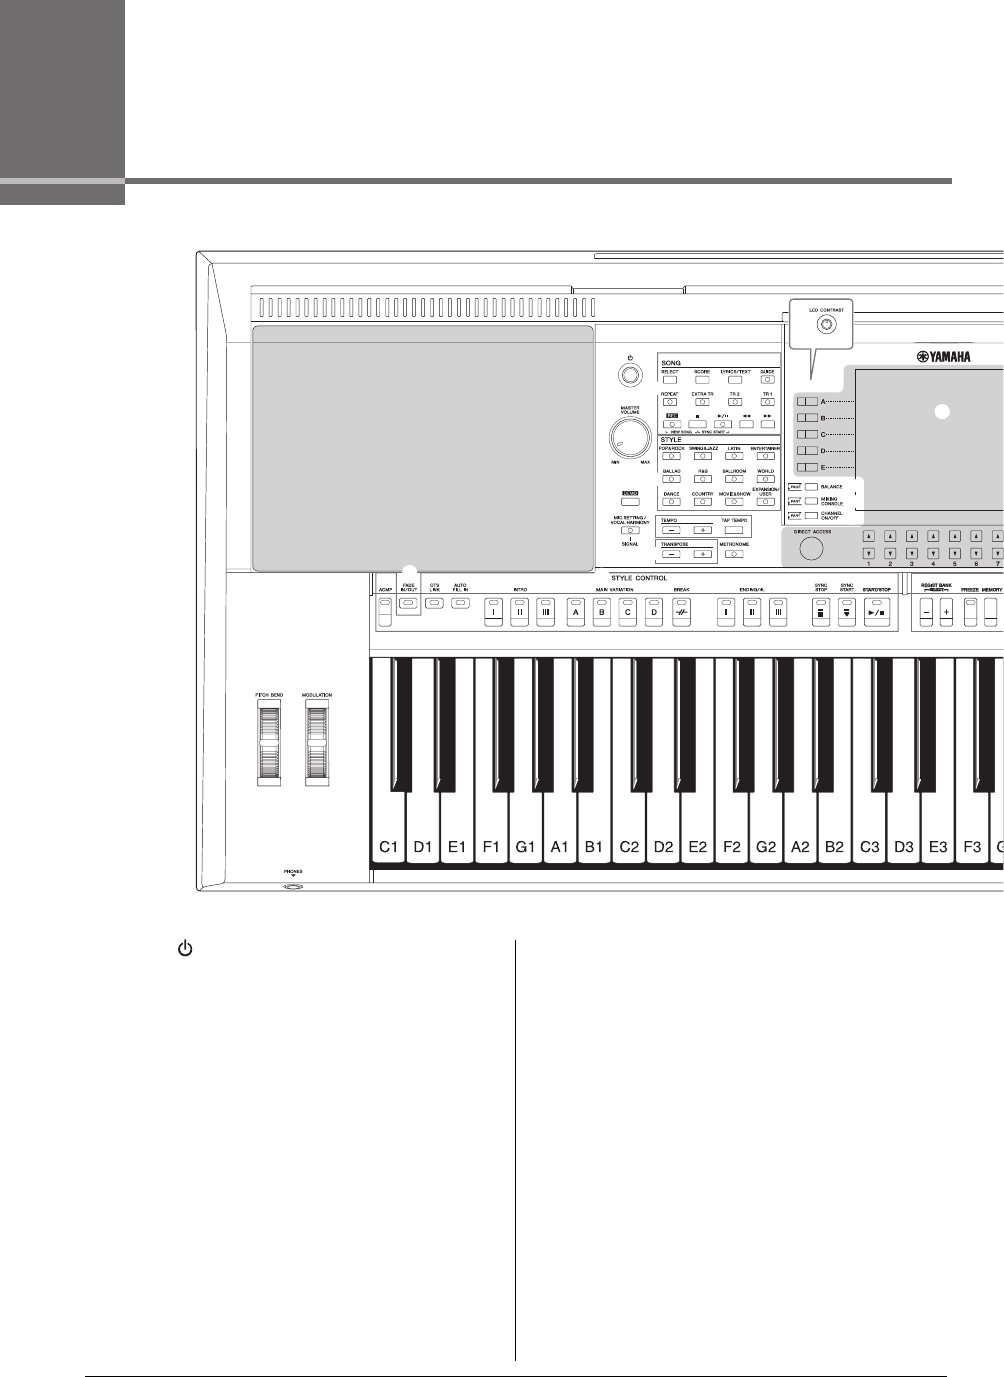 Yamaha Psr S950 Psr S750 Owner S Manual S950 S750 Owner S Psrs950 Id